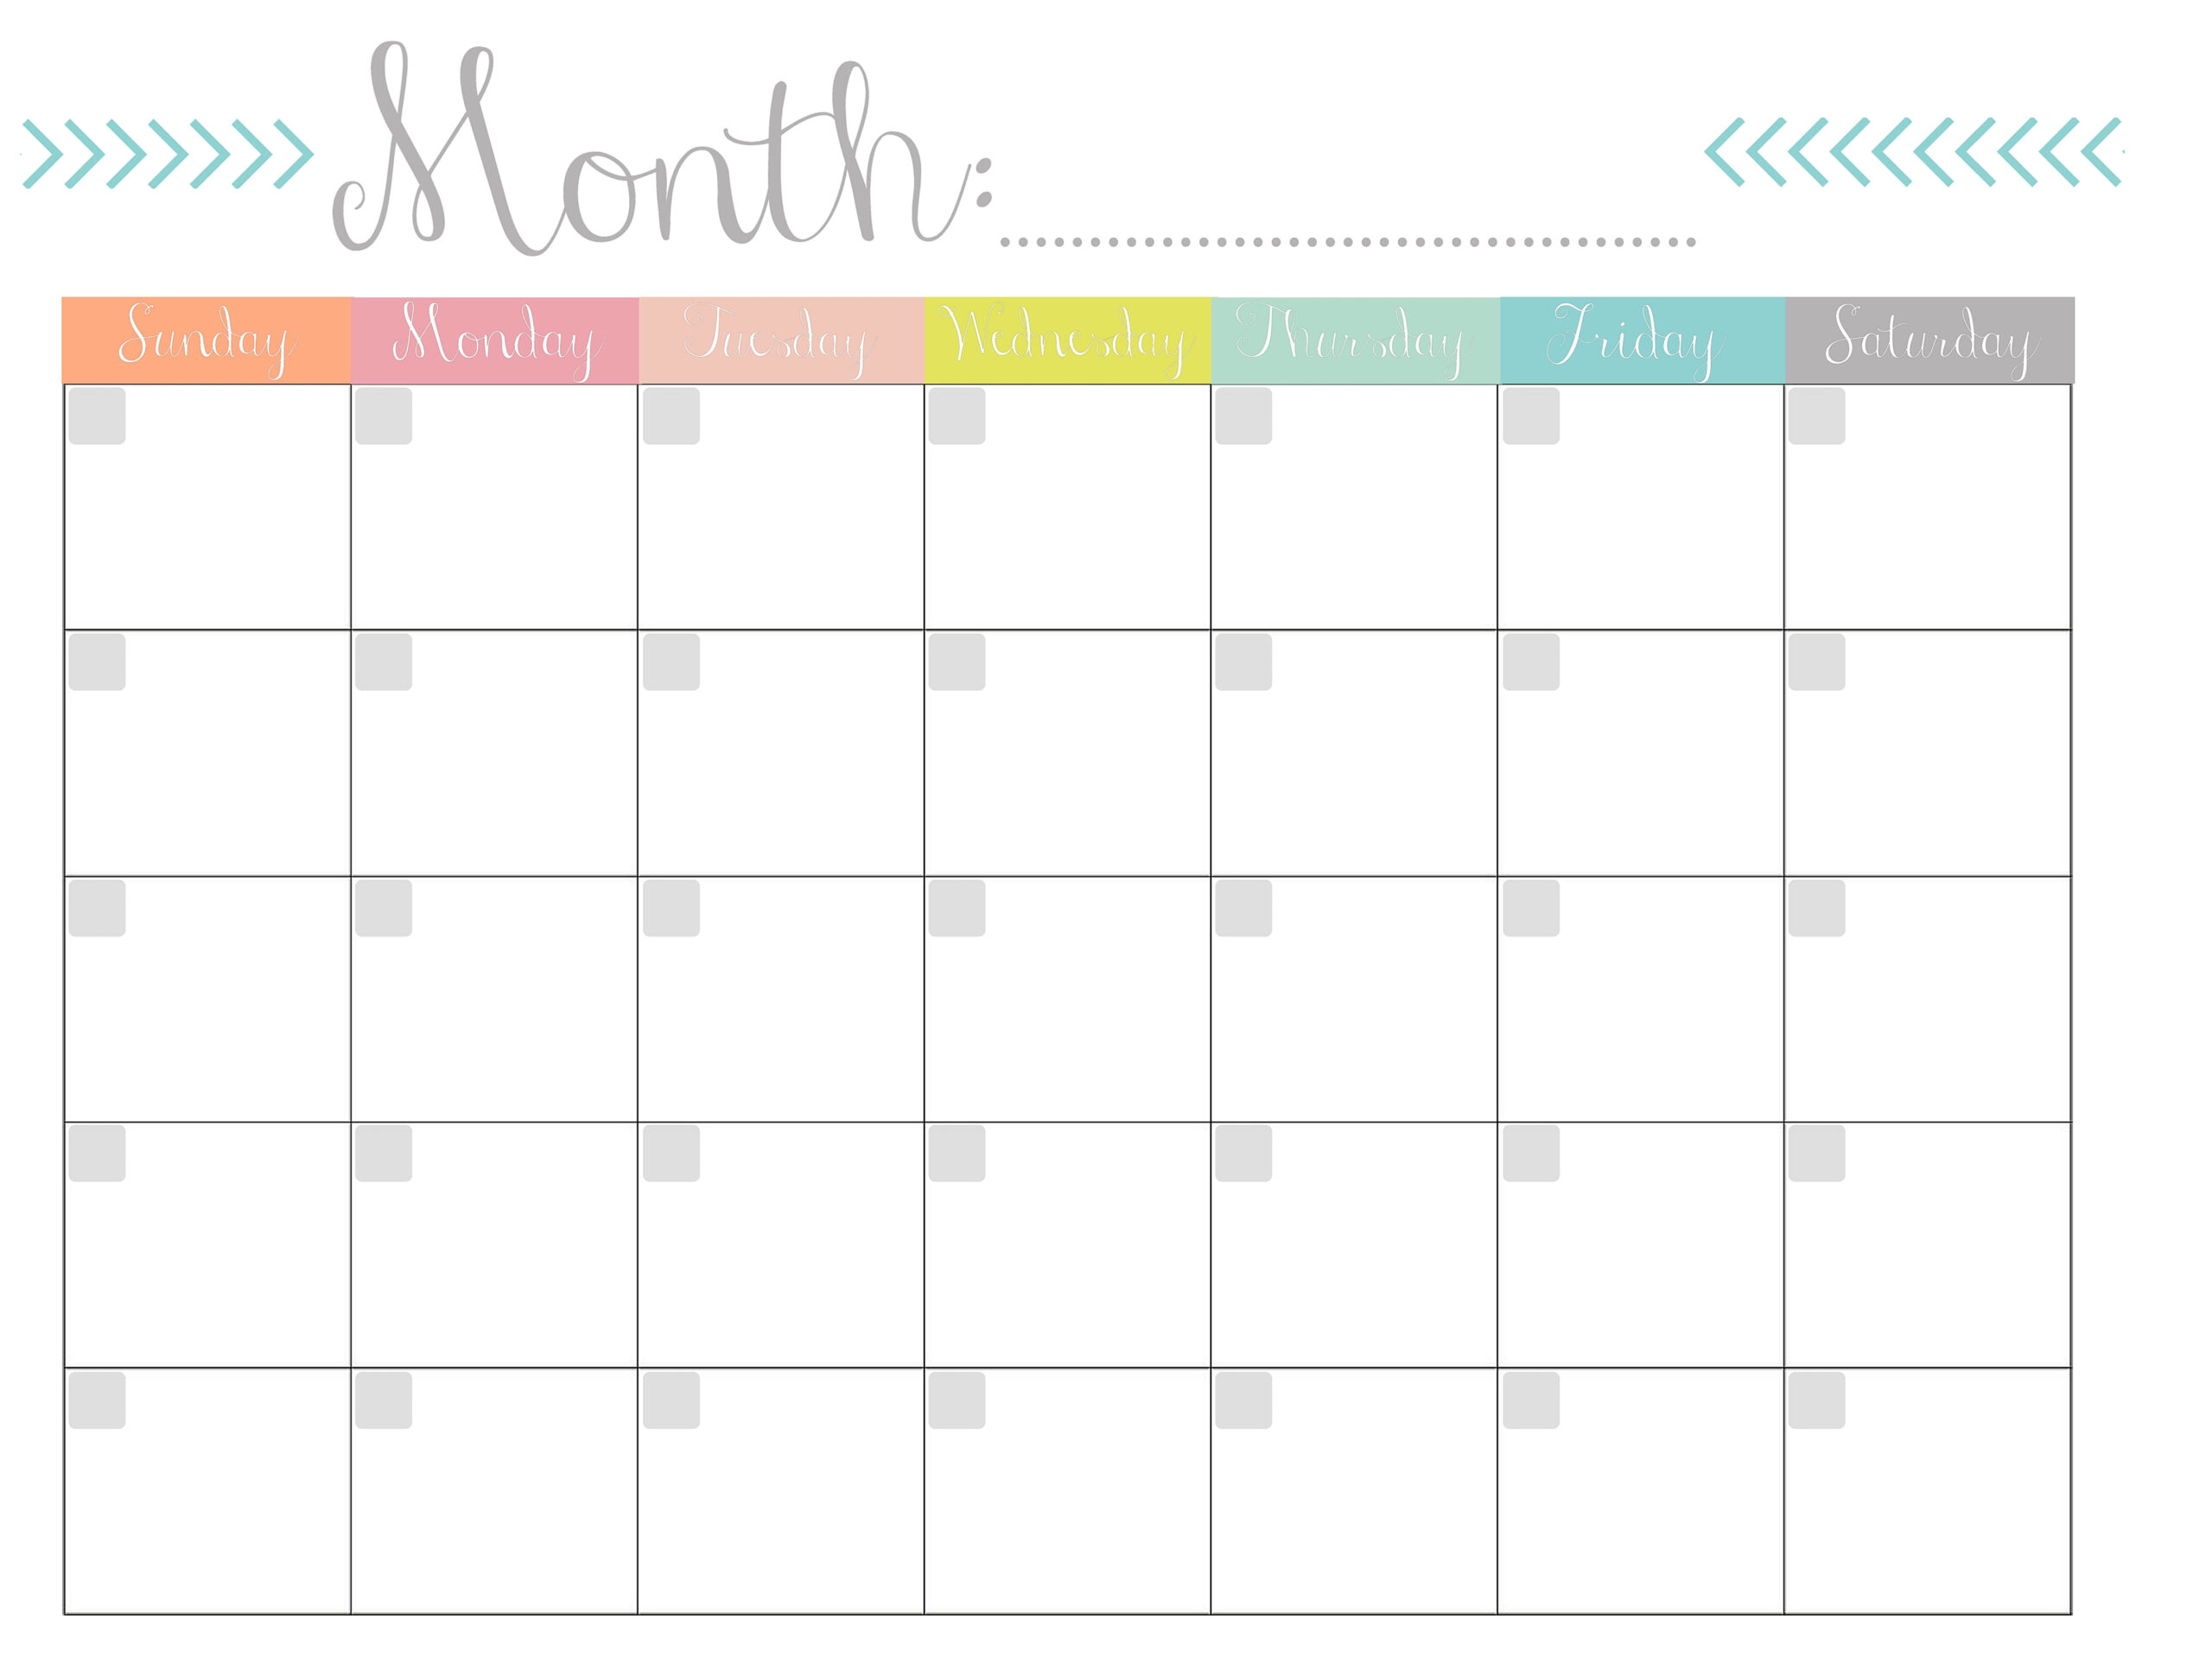 Blank Monthly Calendar Template To Fill In | Calendar intended for Fill In The Blank Calendar